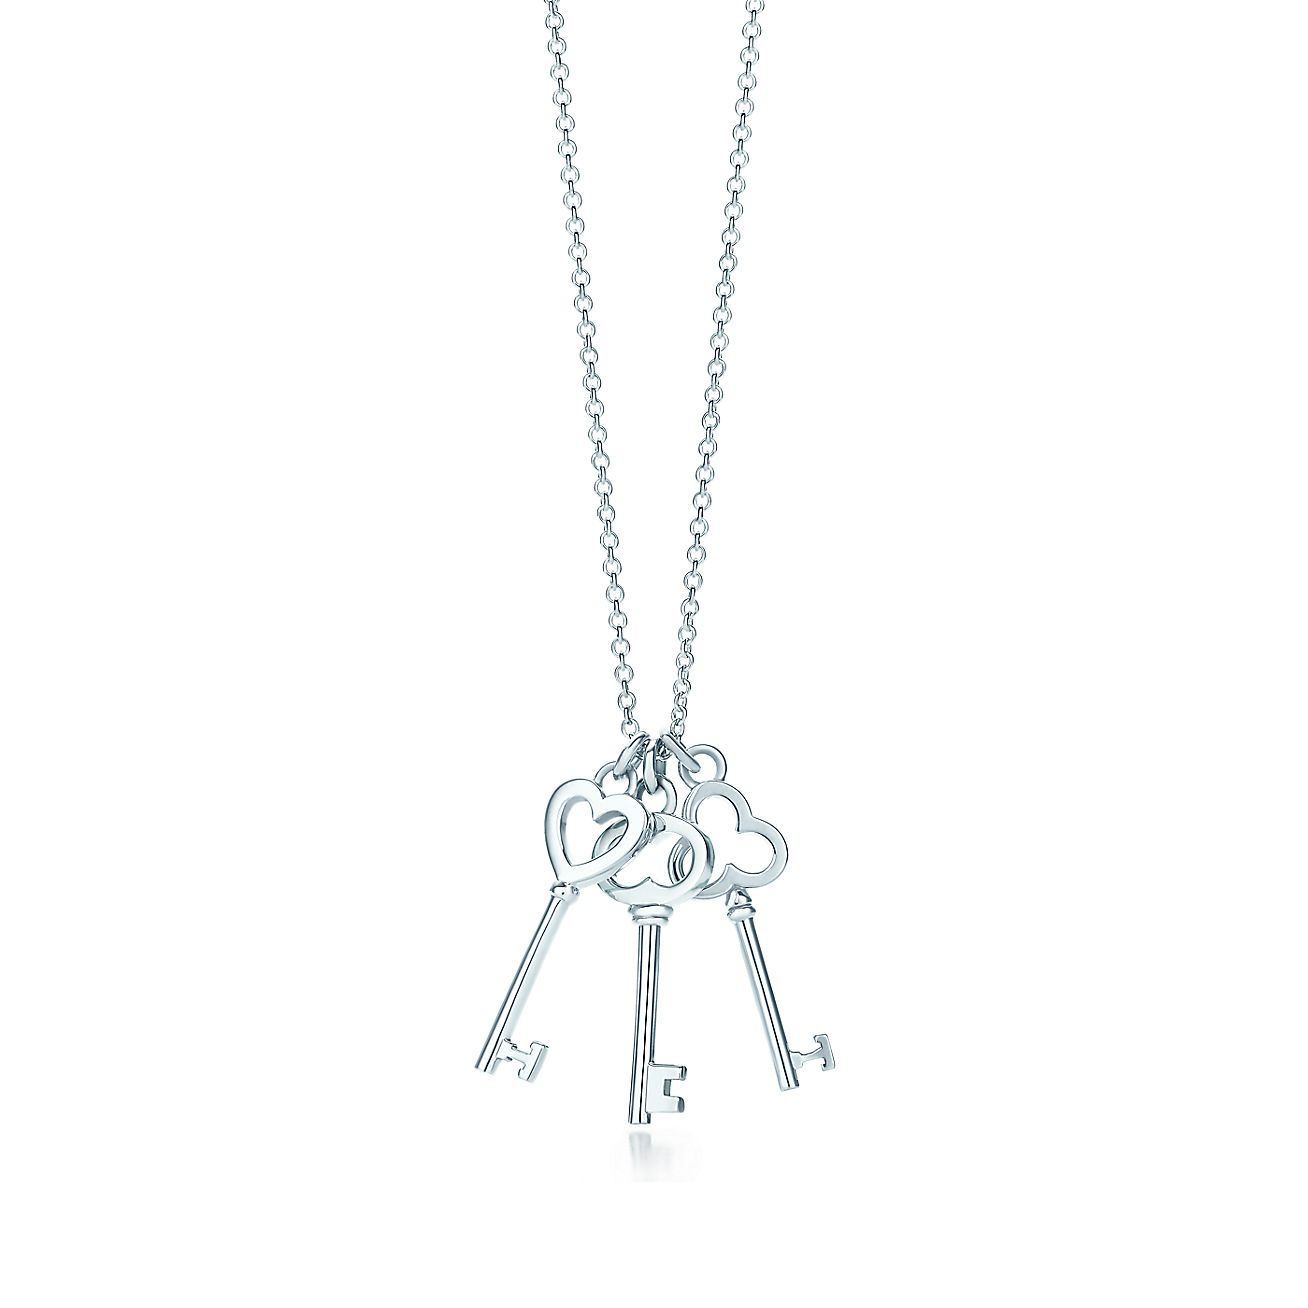 luilu necklace jewelry products delicate key